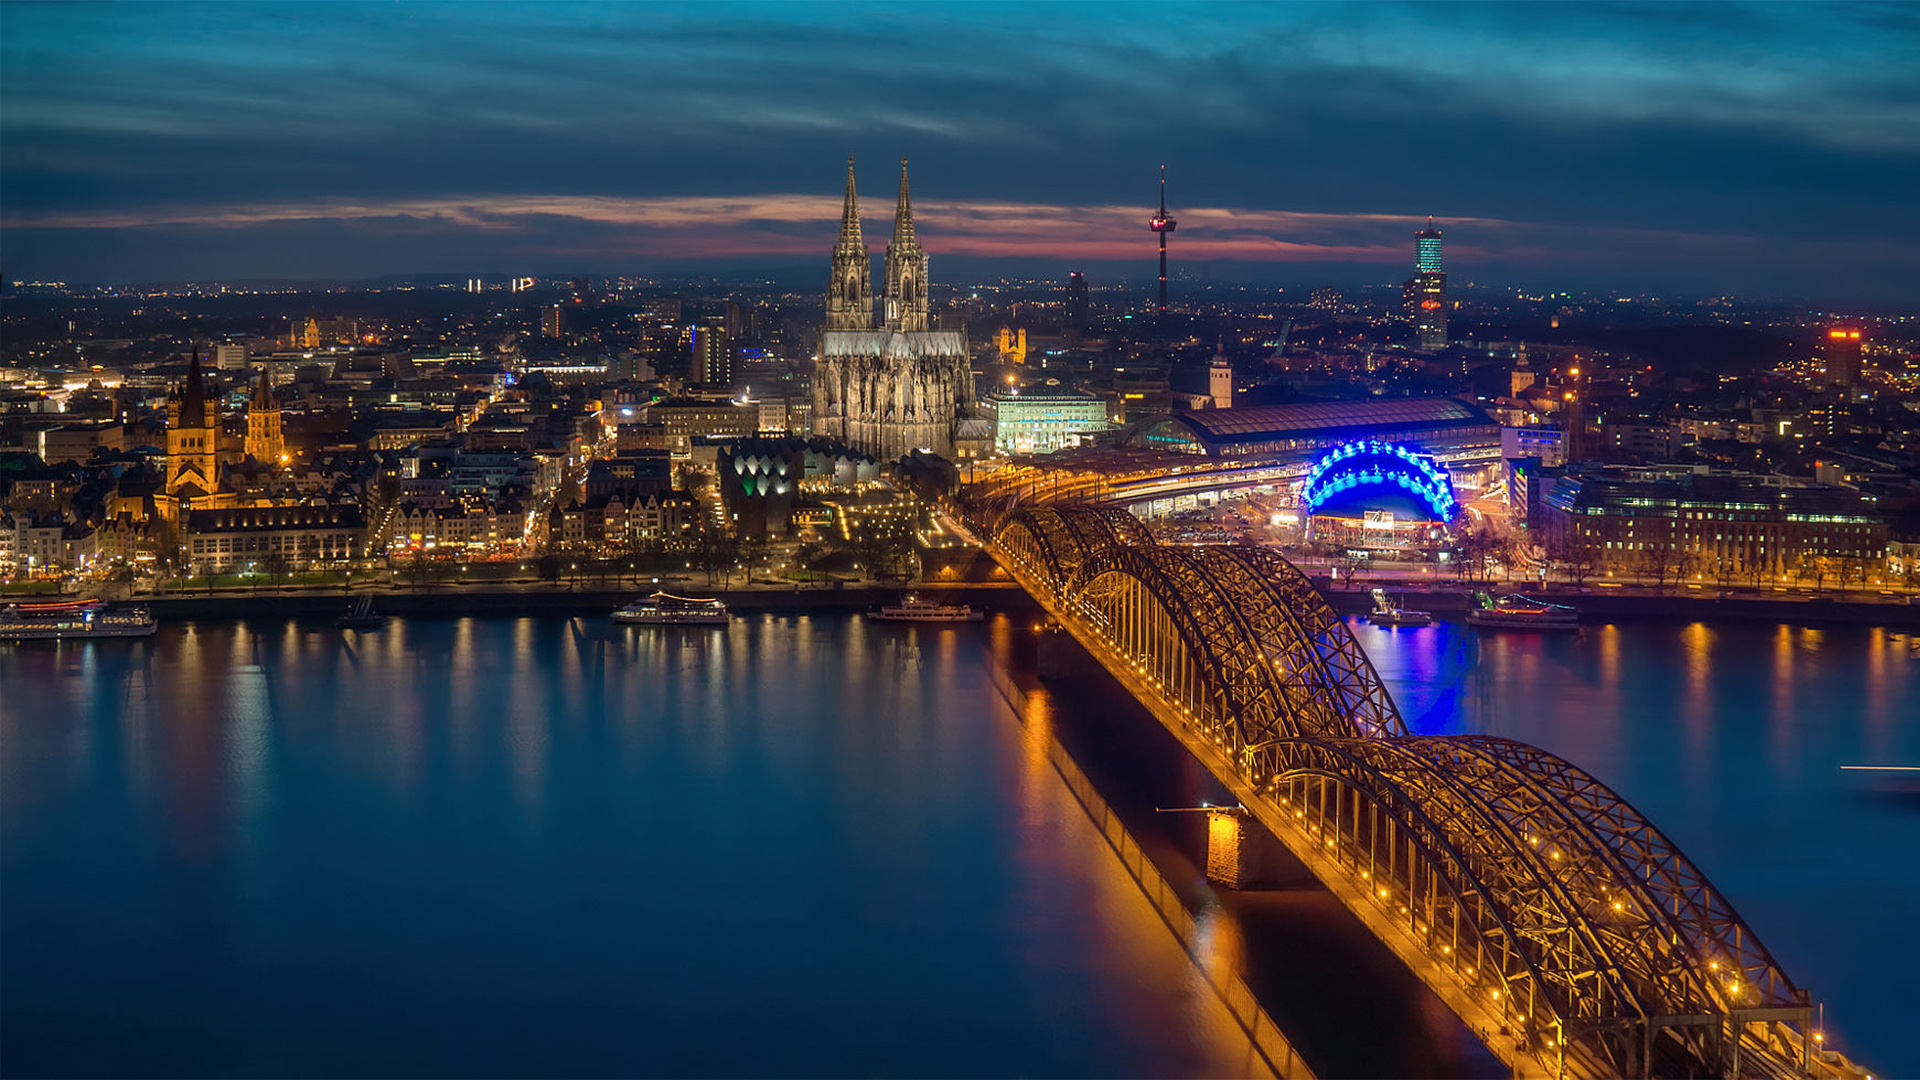 Cologne at night [1920x1080] wallpapers 1920x1080